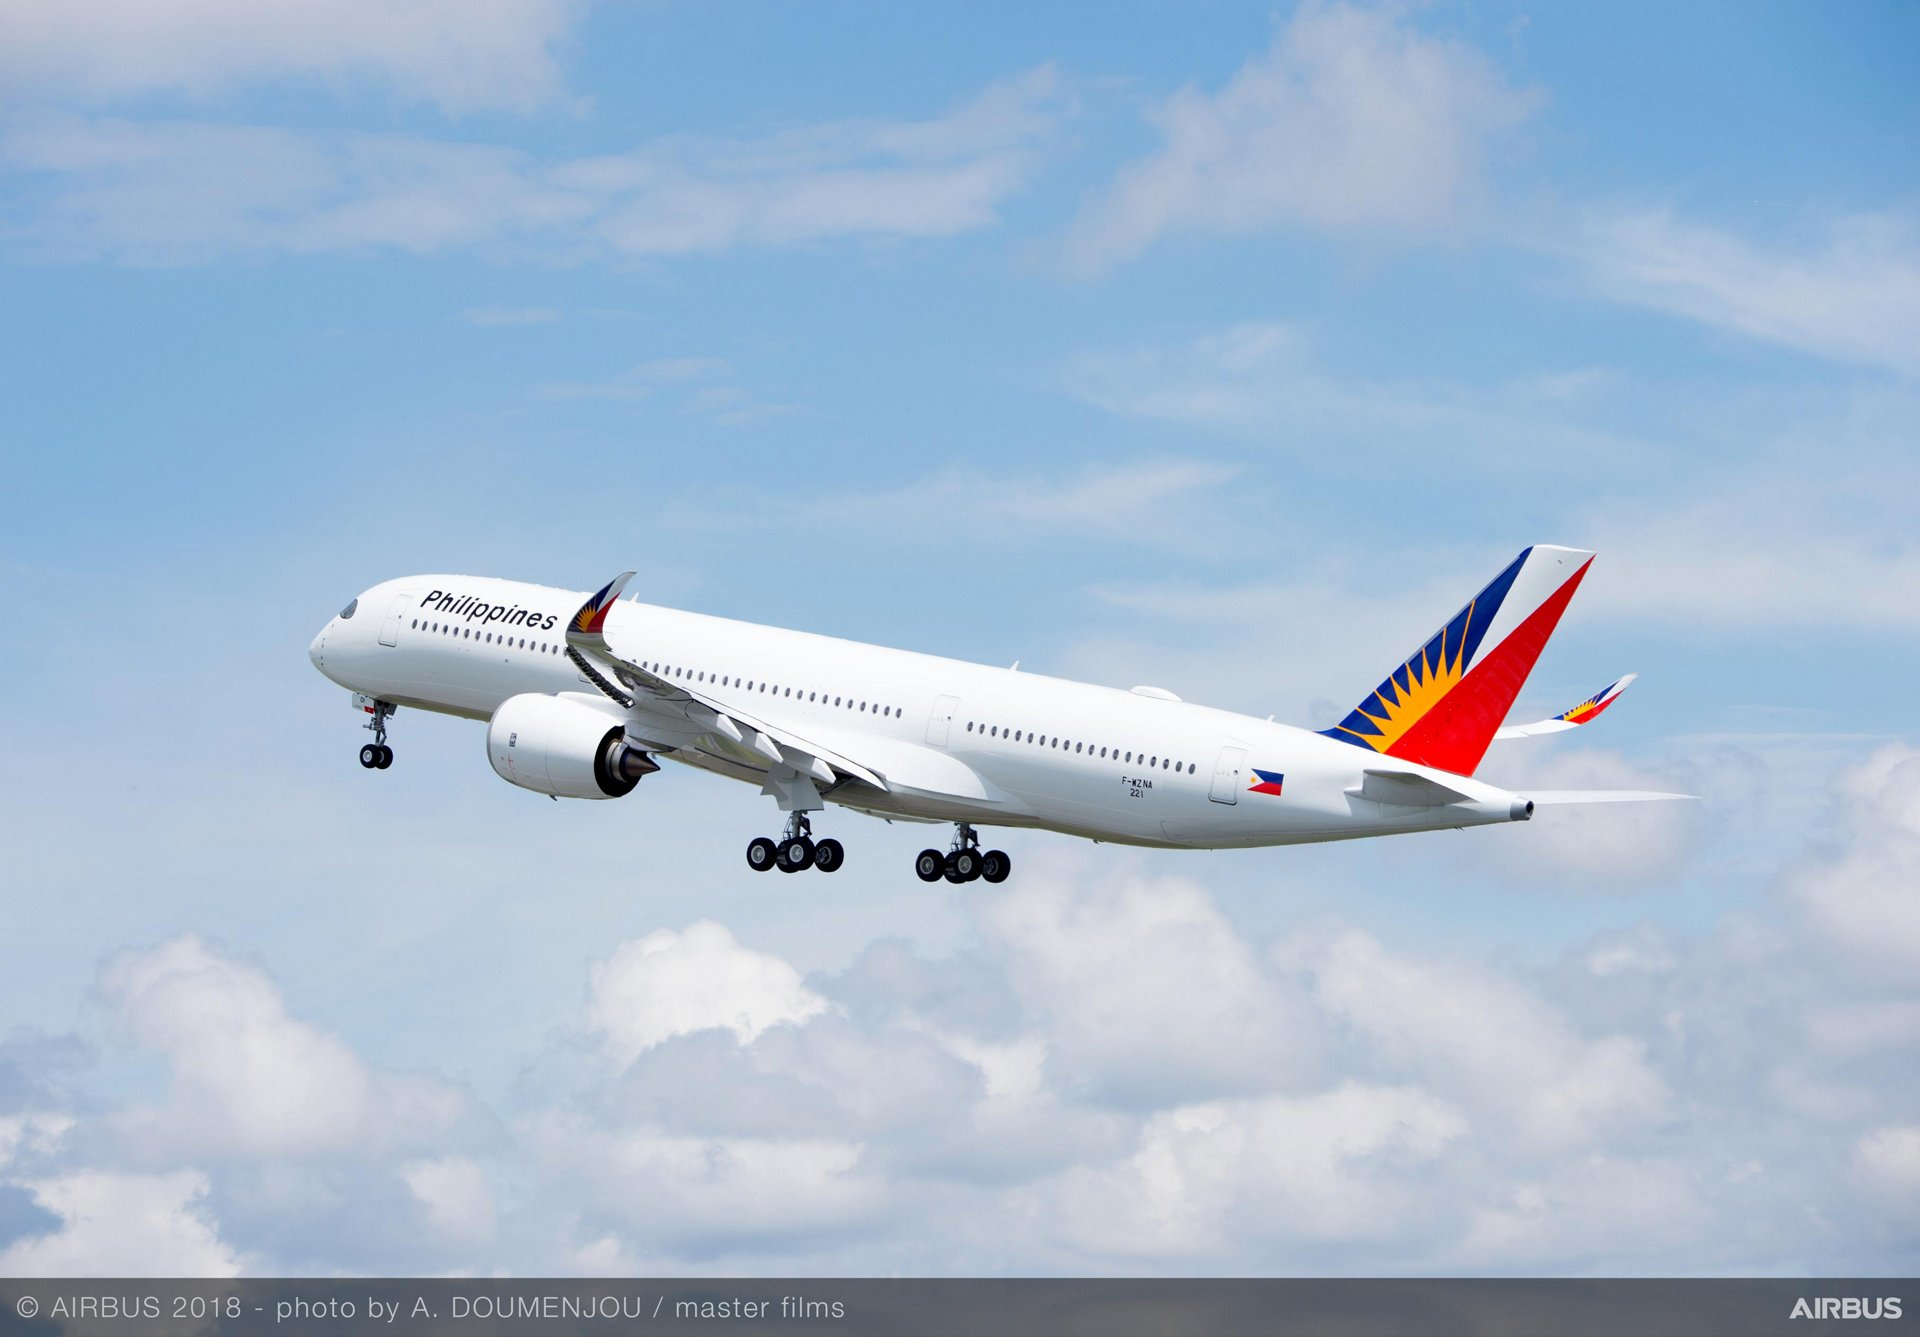 Airbus A350-900 fra Philippine Airlines (Foto: Airbus | A. Doumenjou | master films)